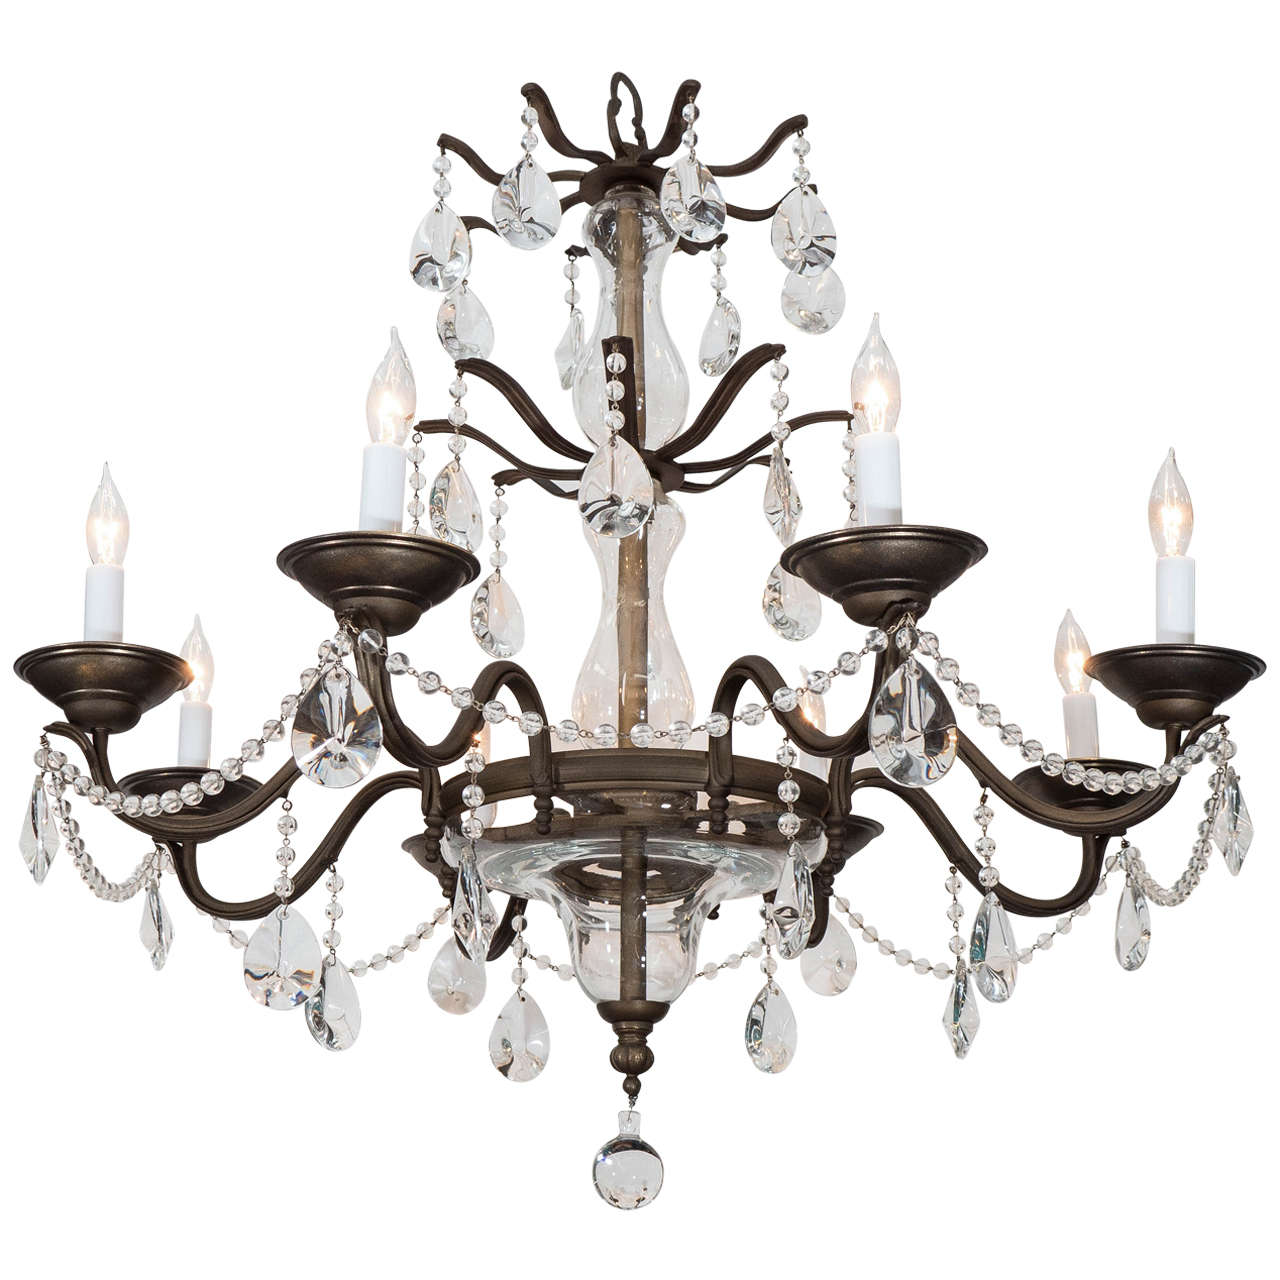 Twelve light italian crystal chandelier with large drops and lots of midcentury eight arm iron chandelier with sciolari crystal drops and beading aloadofball Gallery